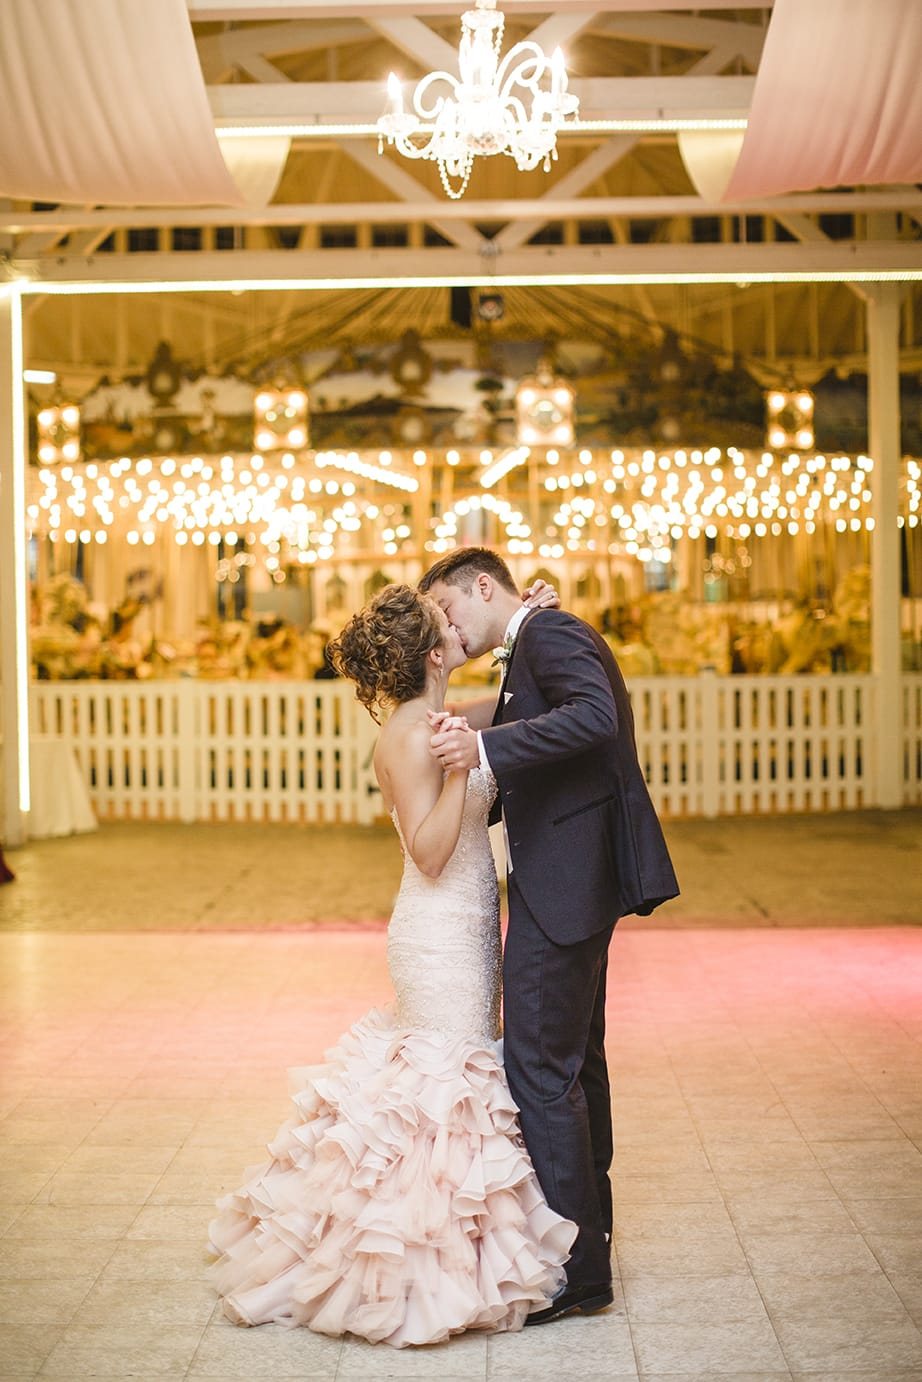 Blush Wedding Dress at Carnival-Themed Wedding - Maggie Bride wearing Serencia by Maggie Sottero